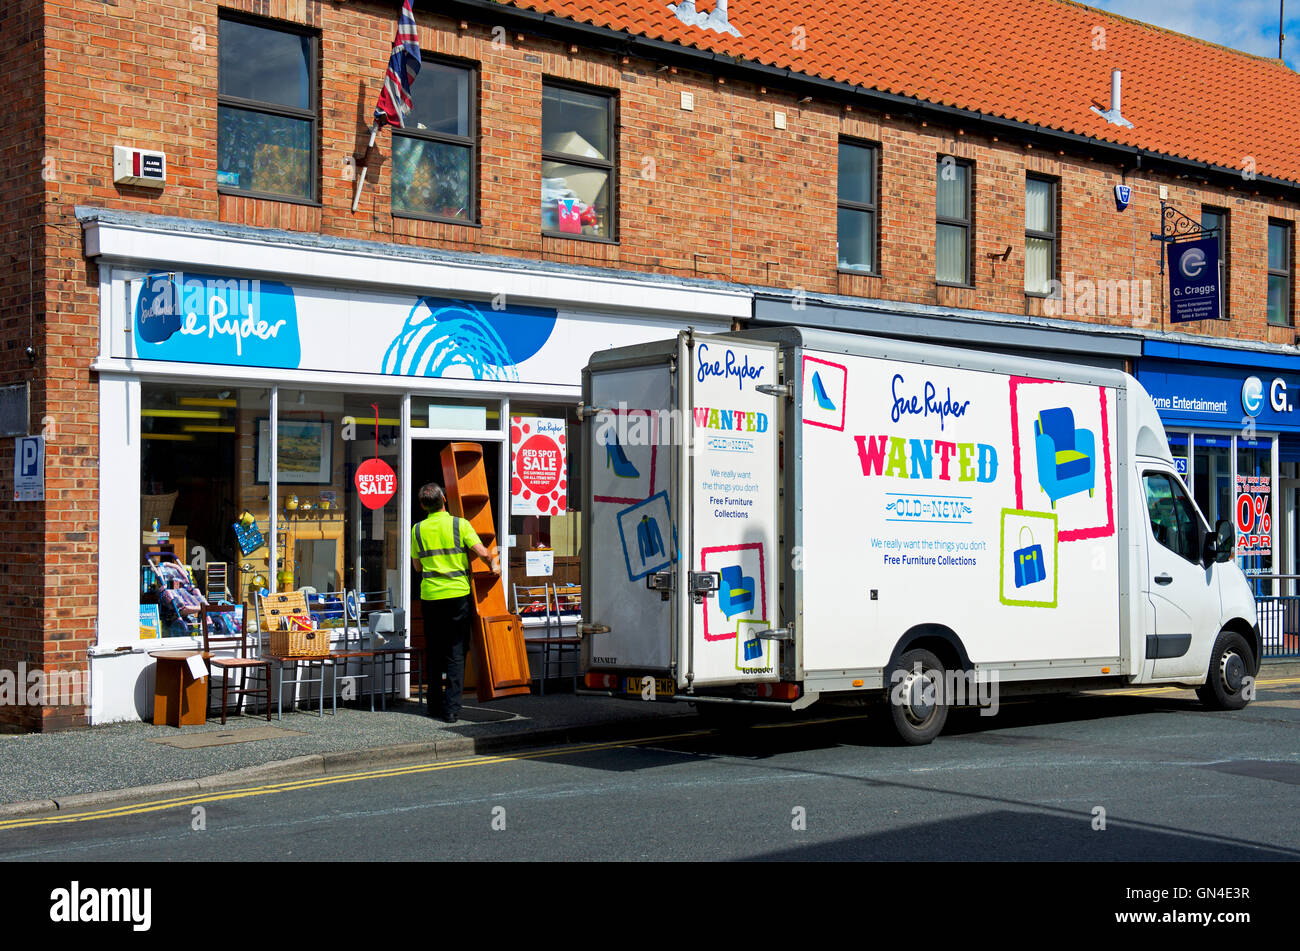 Delivery van parked outside Sue Ryder charity shop, England UK - Stock Image